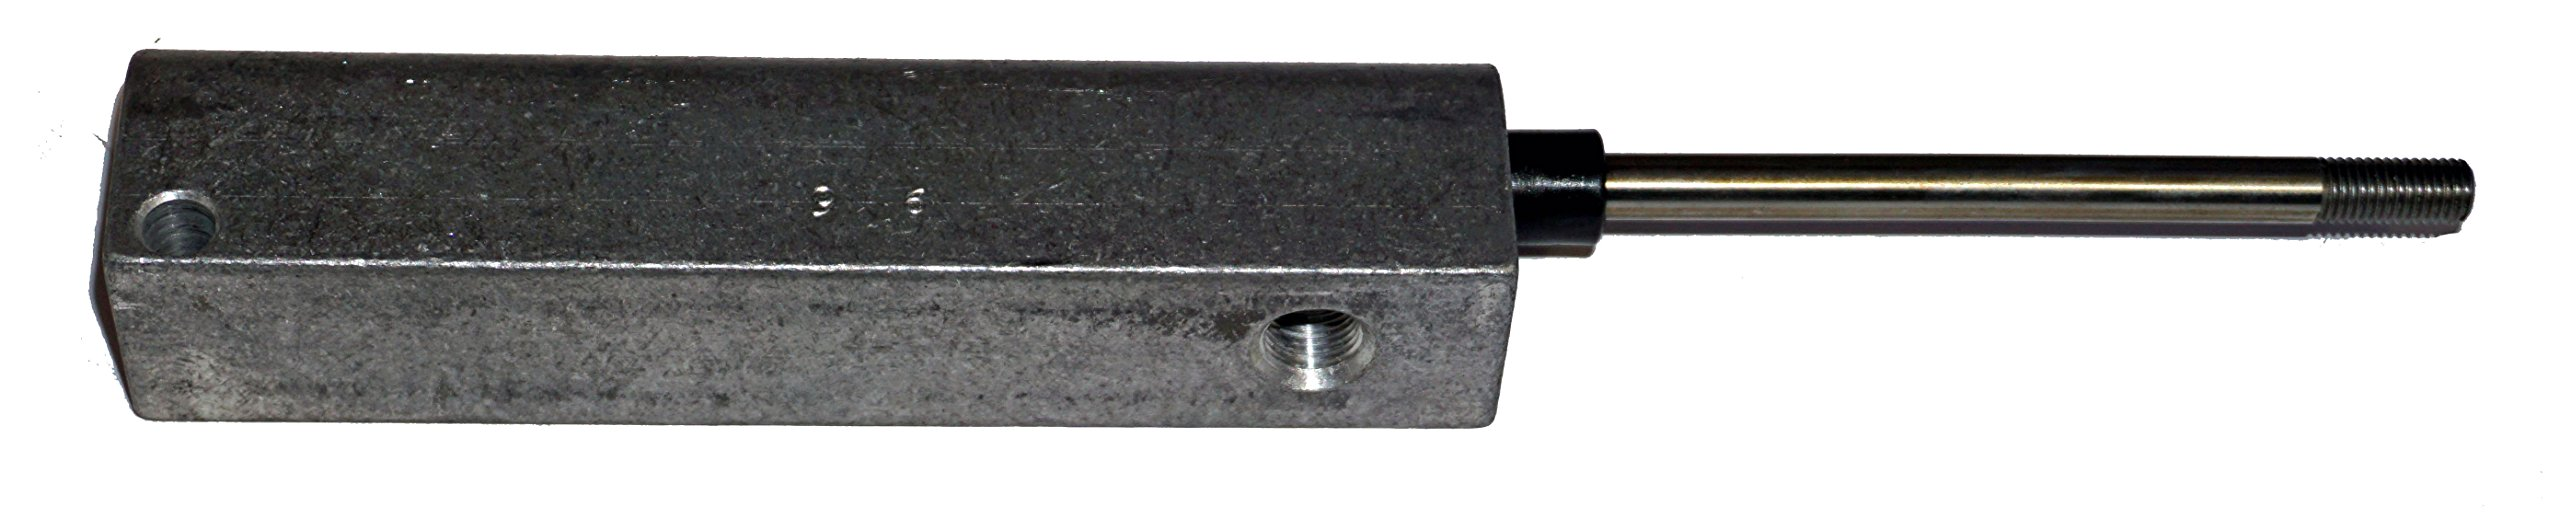 Rotary Lift S130061 1 Port Air Cylinder For 123 Series 4 Post Lifts by Rotary